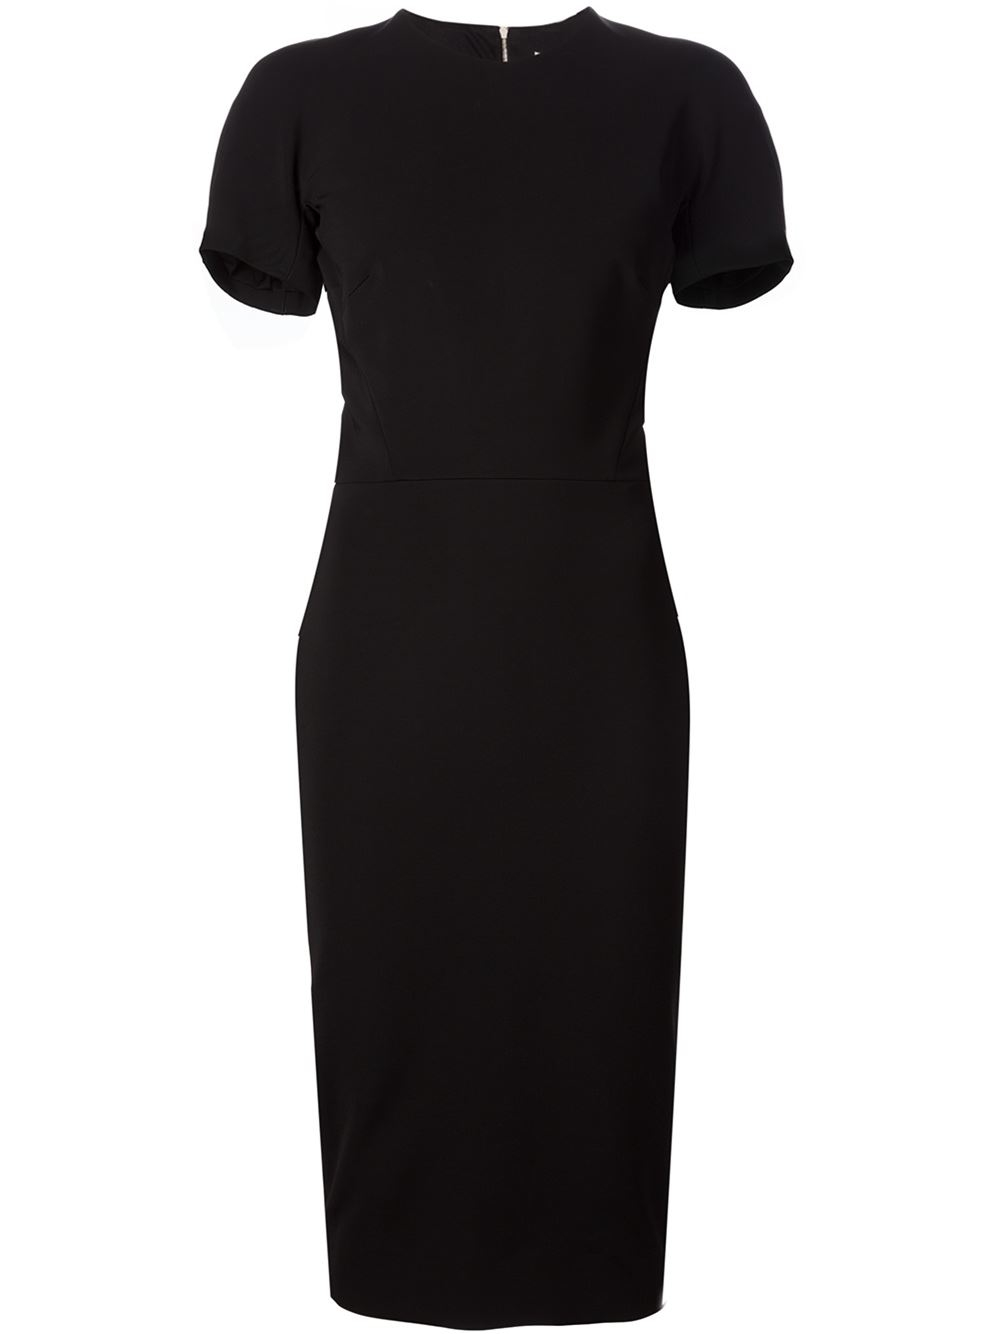 71edf173f22e Lyst - Victoria Beckham Mid-length Fitted Dress in Black